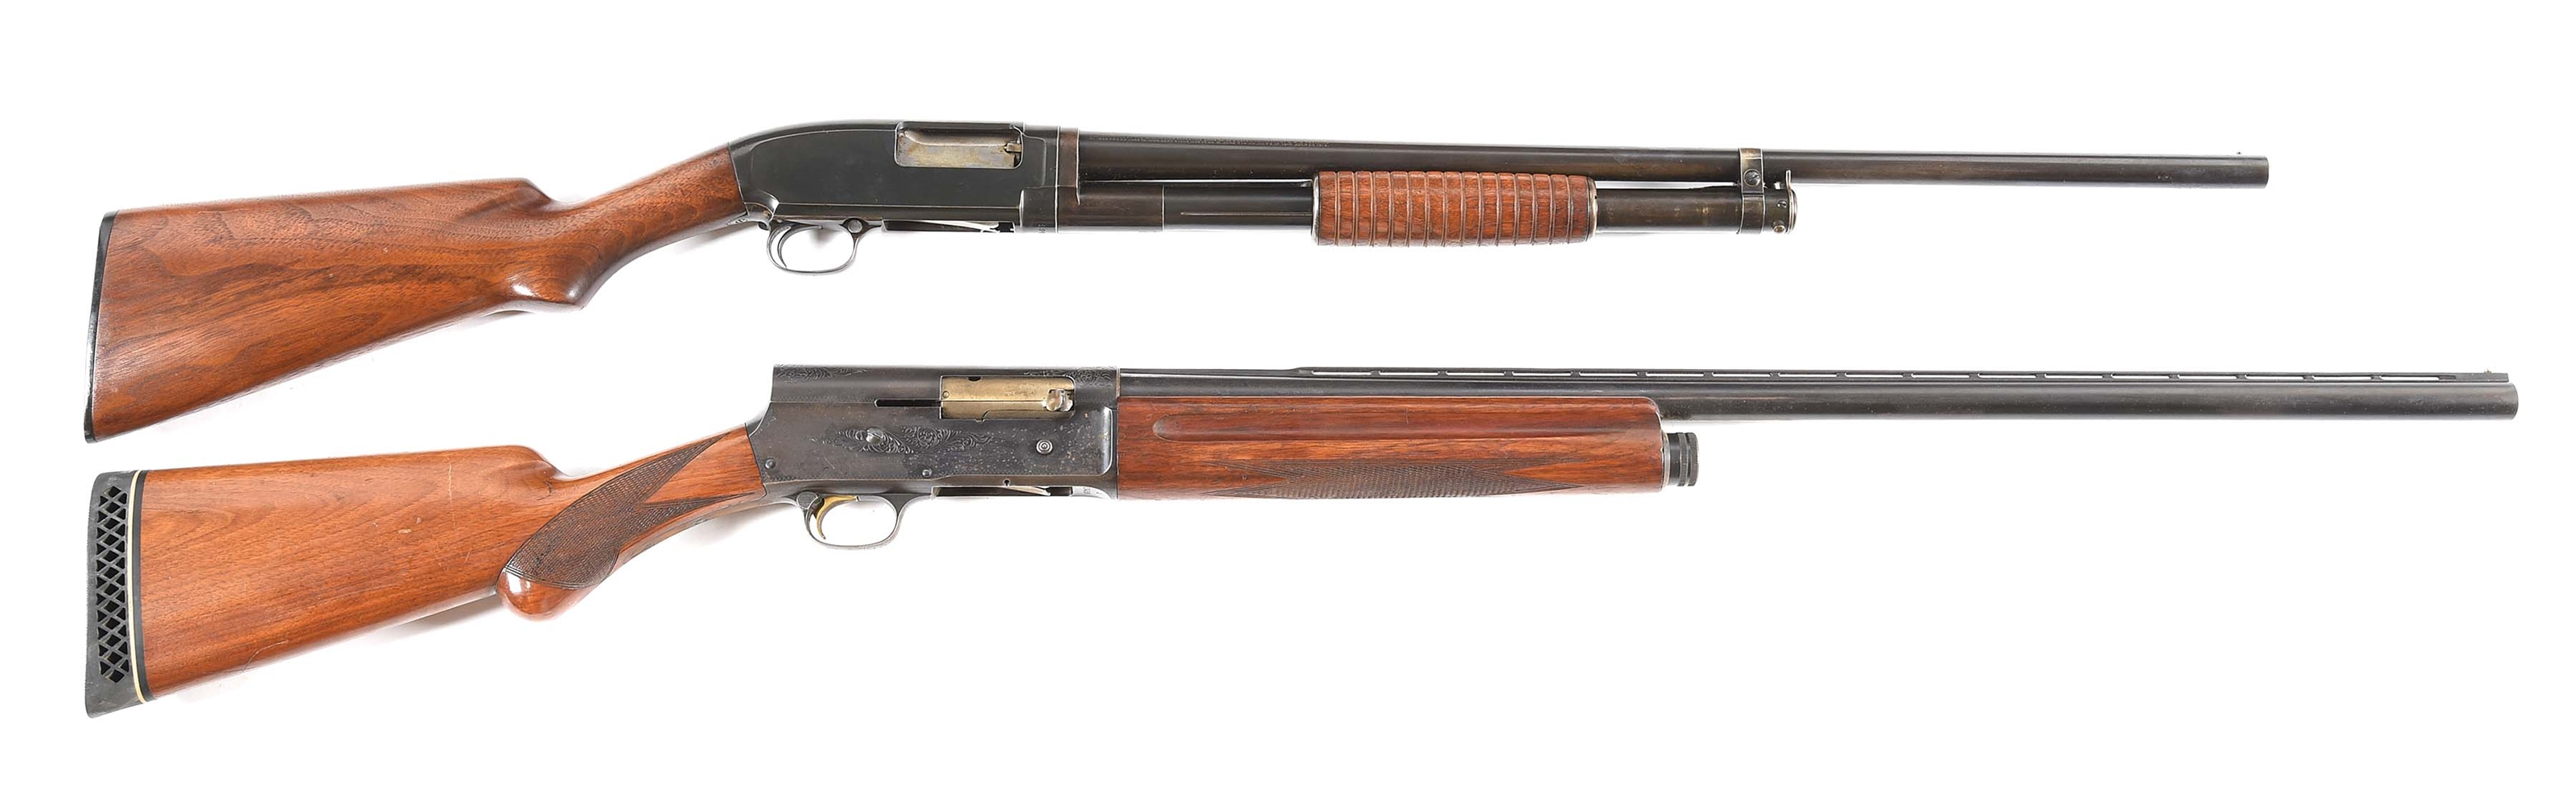 (C) LOT OF 2: WINCHESTER 1912 SLIDE ACTION AND BROWNING A5 SEMI-AUTOMATIC SHOTGUNS